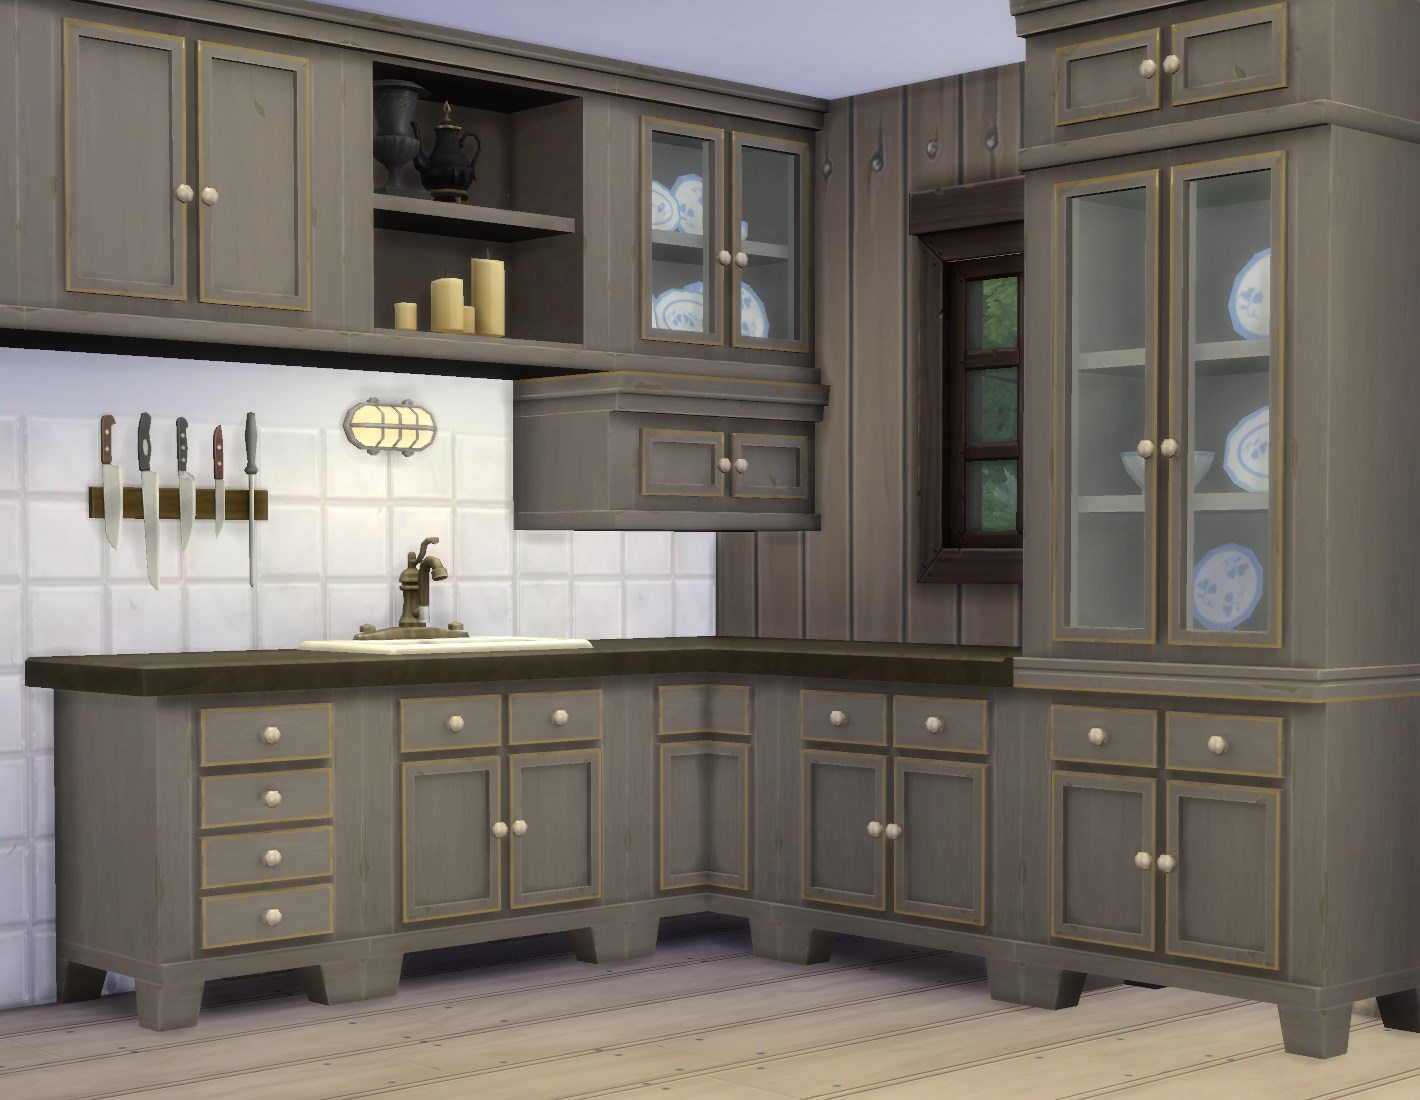 Mod the sims country kitchen for Cc kitchen cabinets